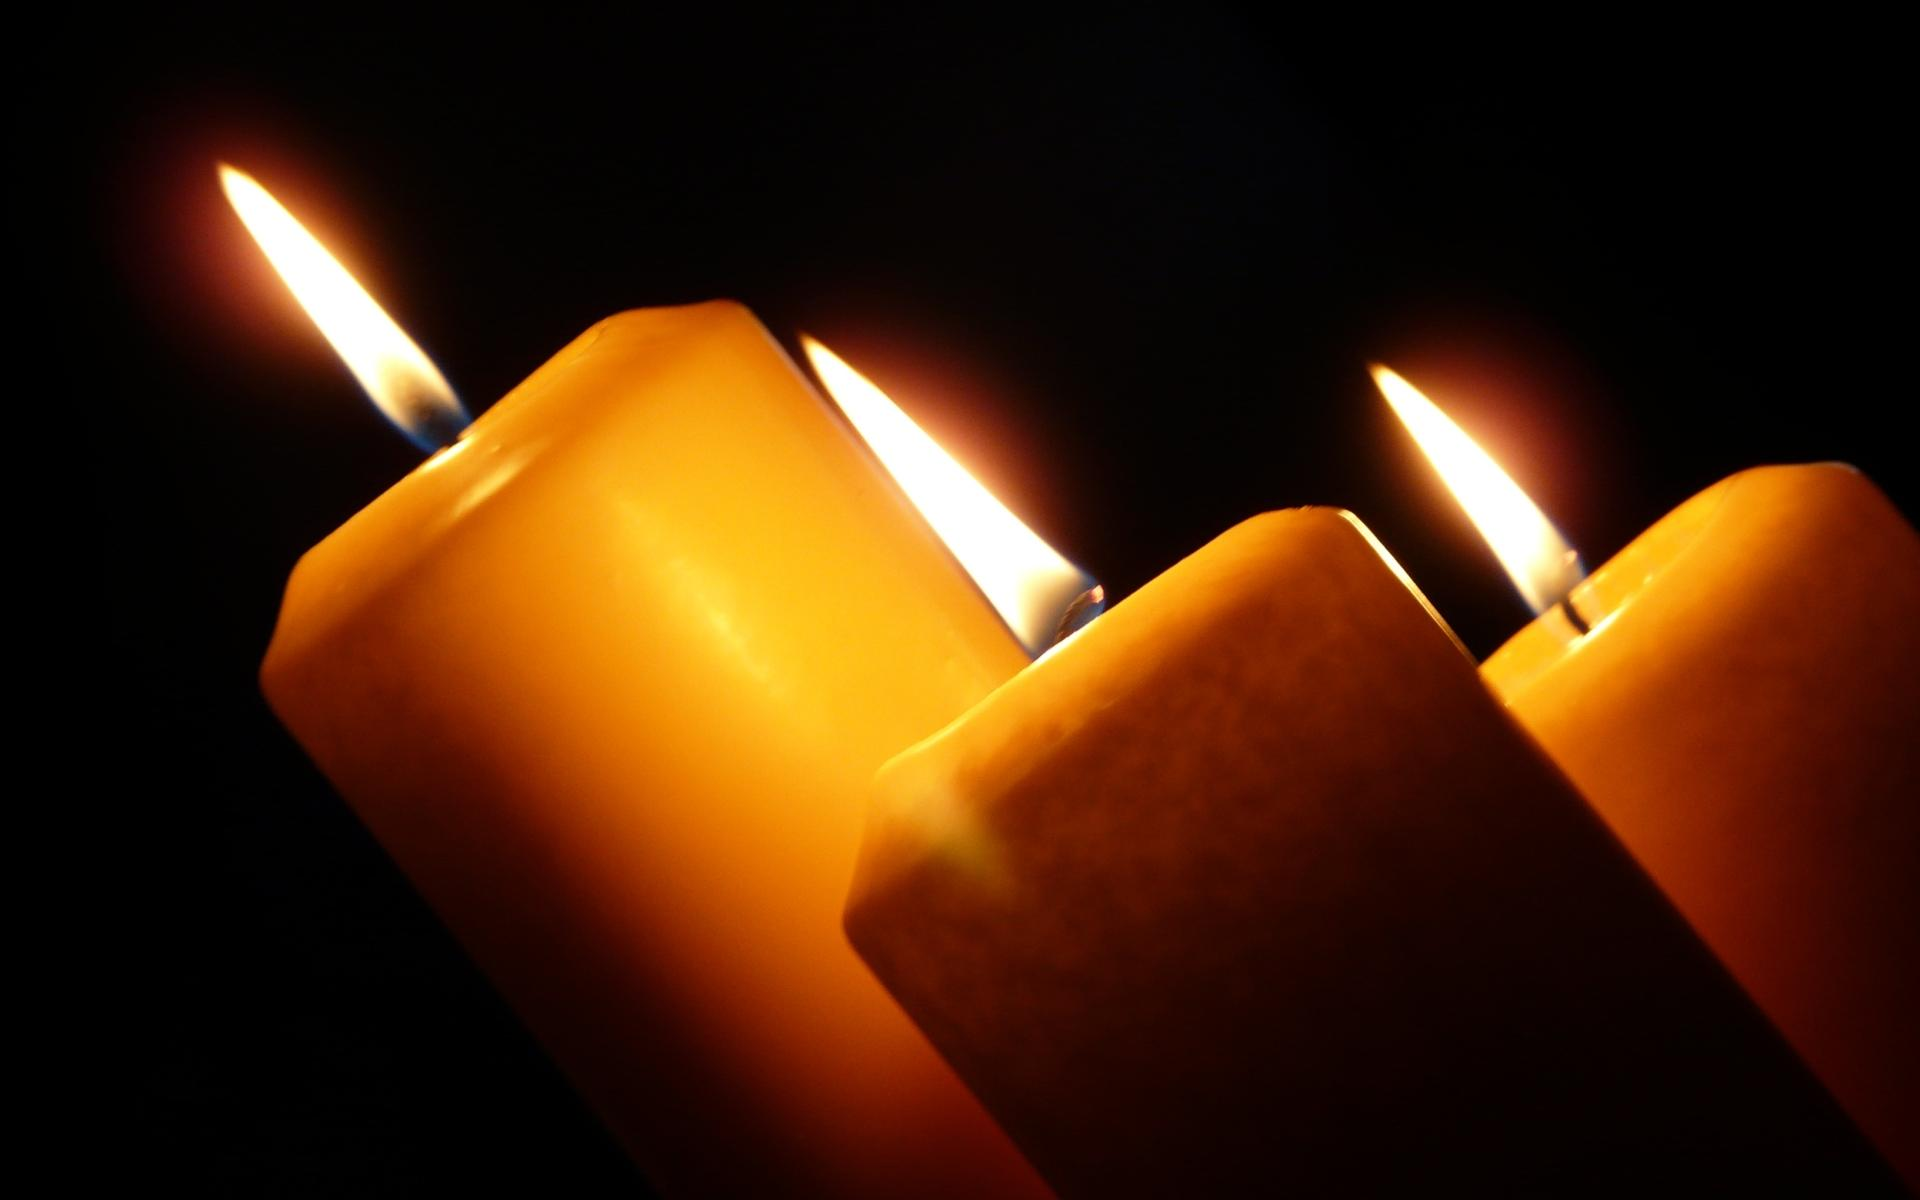 Candle Photography wallpapers HD quality